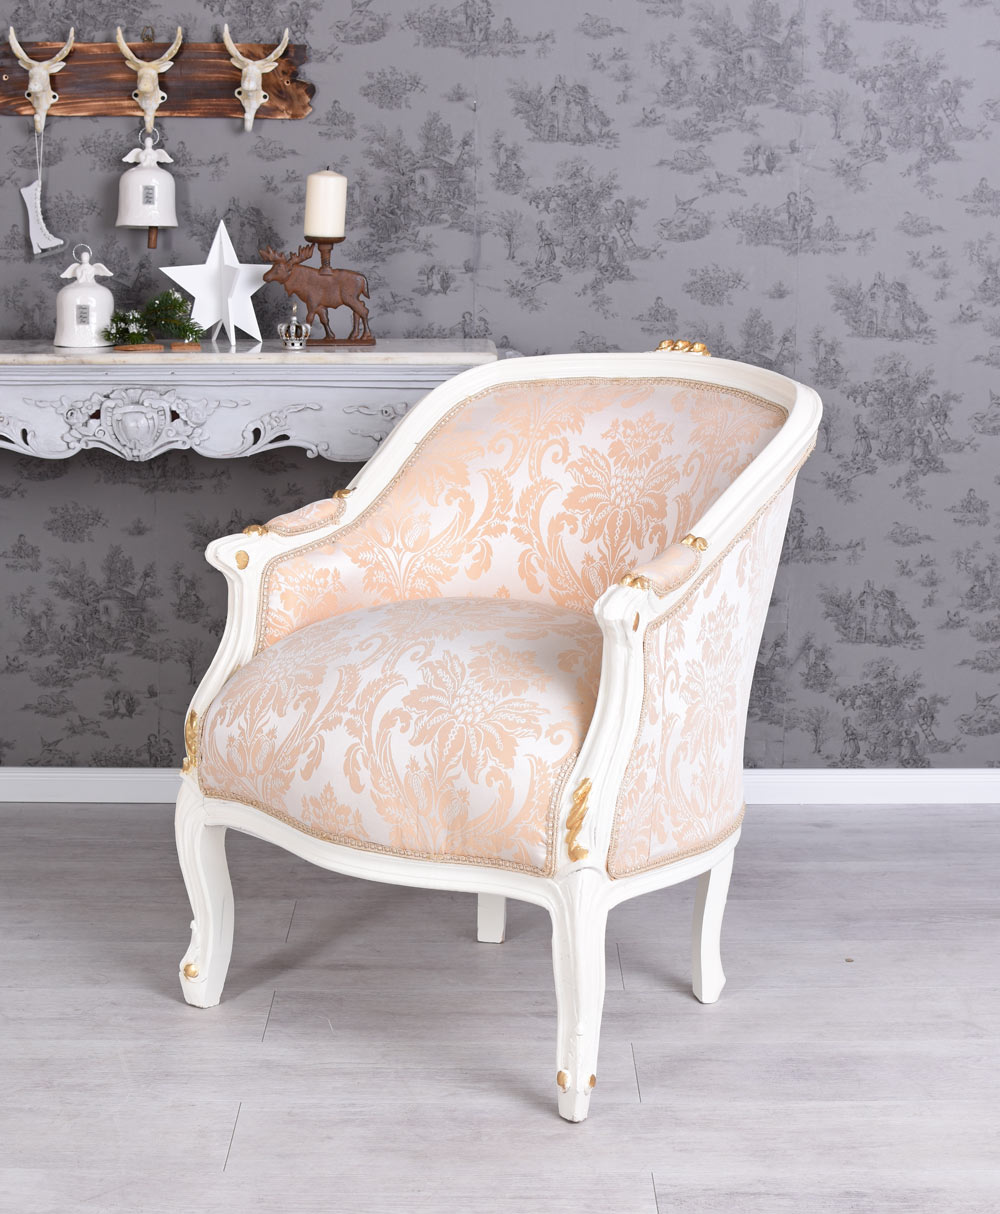 barock sessel frankreich shabby chic bergere sitzbank. Black Bedroom Furniture Sets. Home Design Ideas